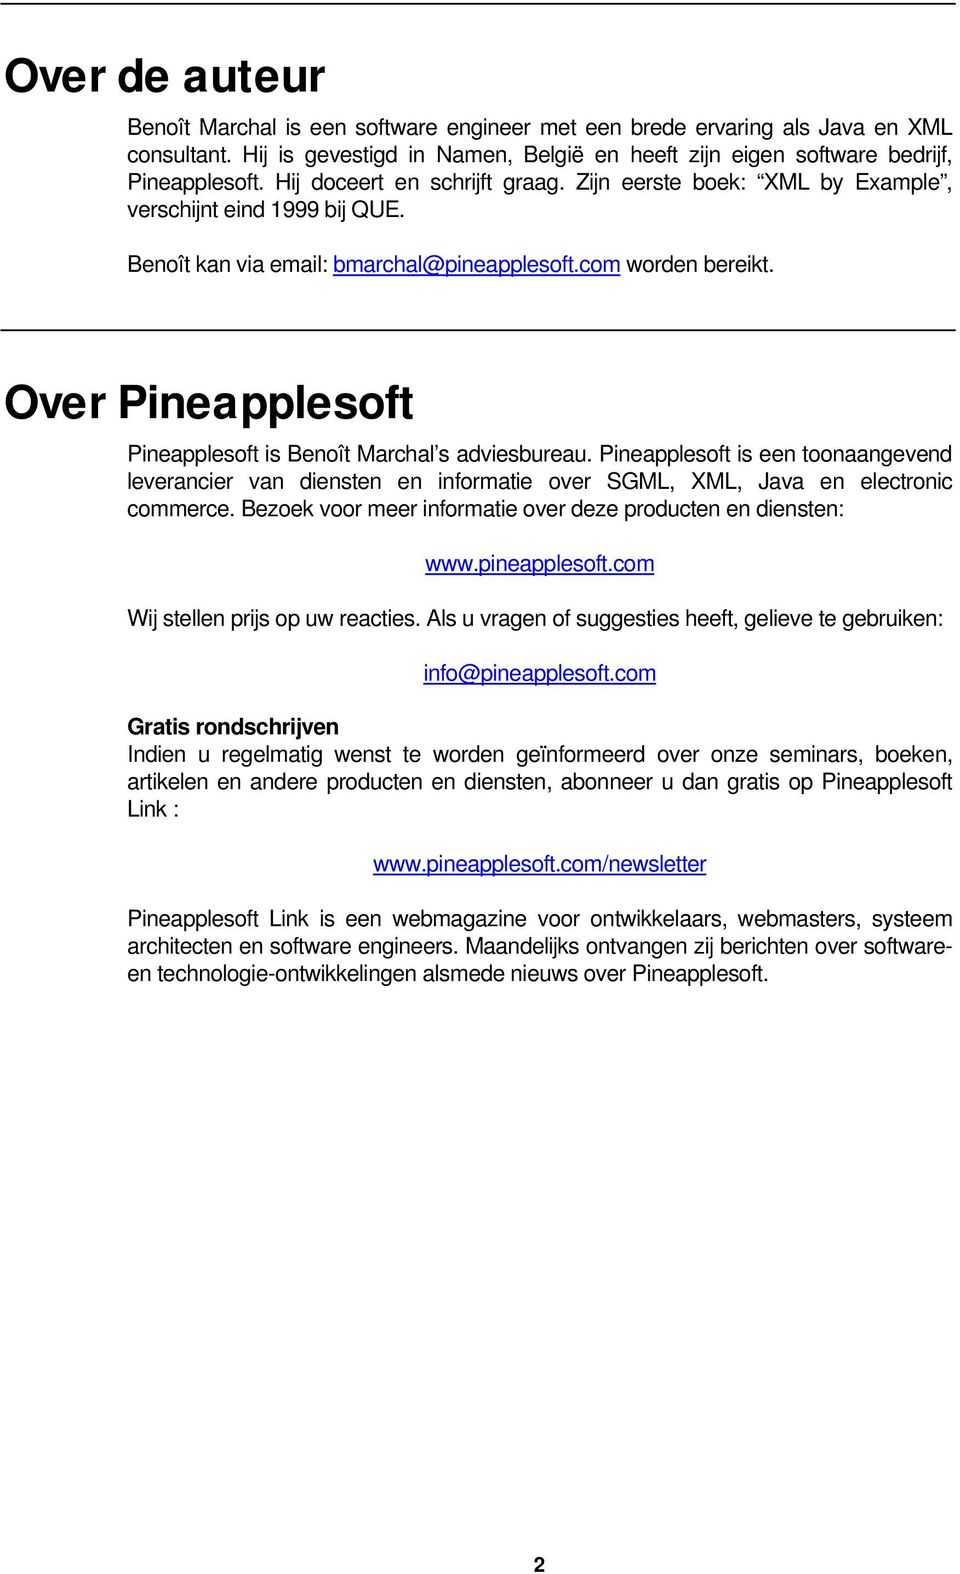 Over Pineapplesoft Pineapplesoft is Benoît Marchal s adviesbureau. Pineapplesoft is een toonaangevend leverancier van diensten en informatie over SGML, XML, Java en electronic commerce.